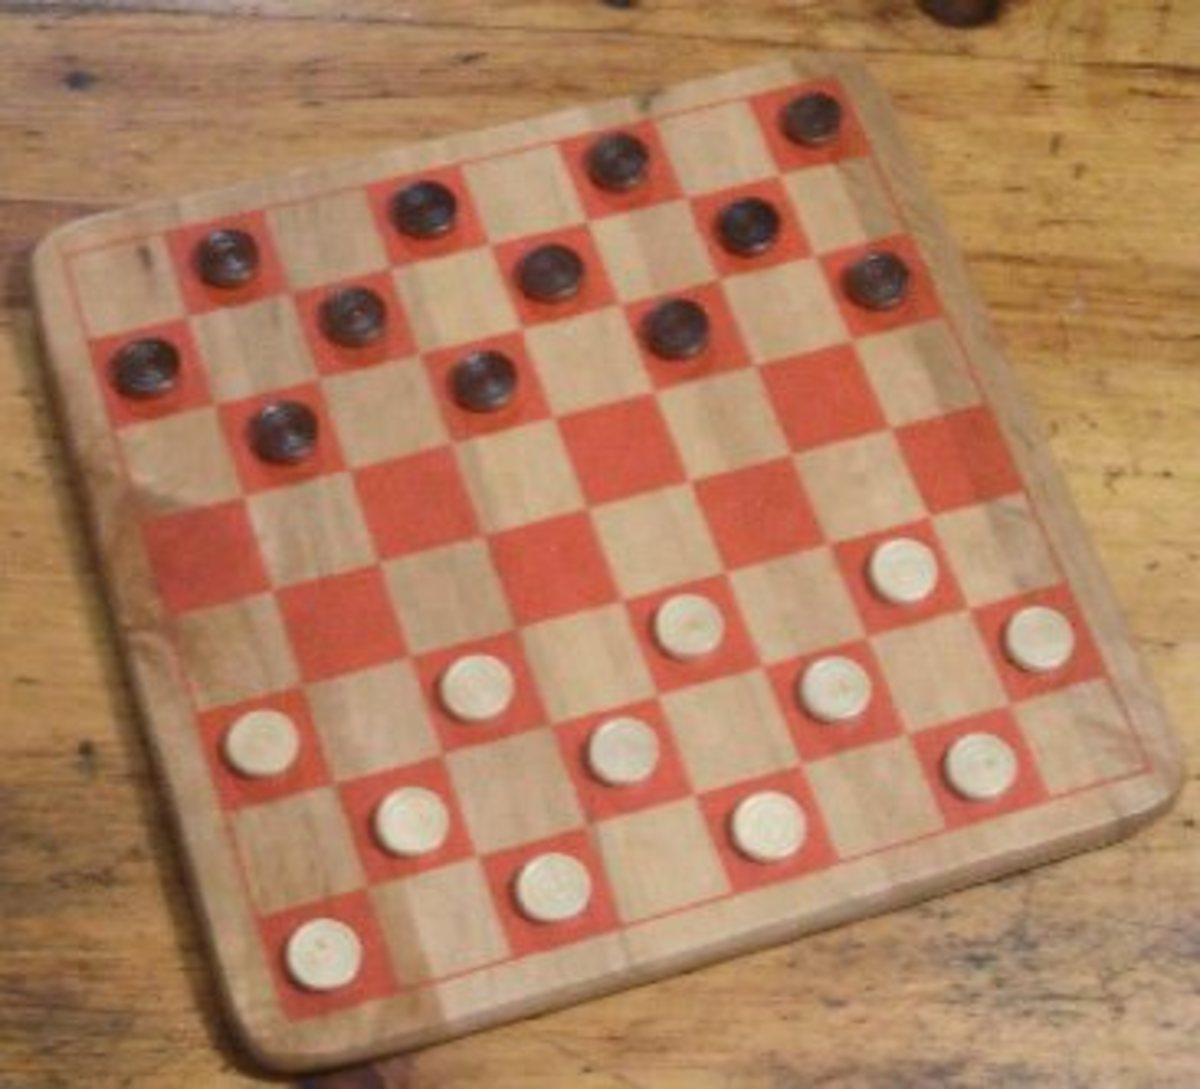 Checkers has few rules and is very easy to learn but doesn't offer players the rich gameplay of chess.